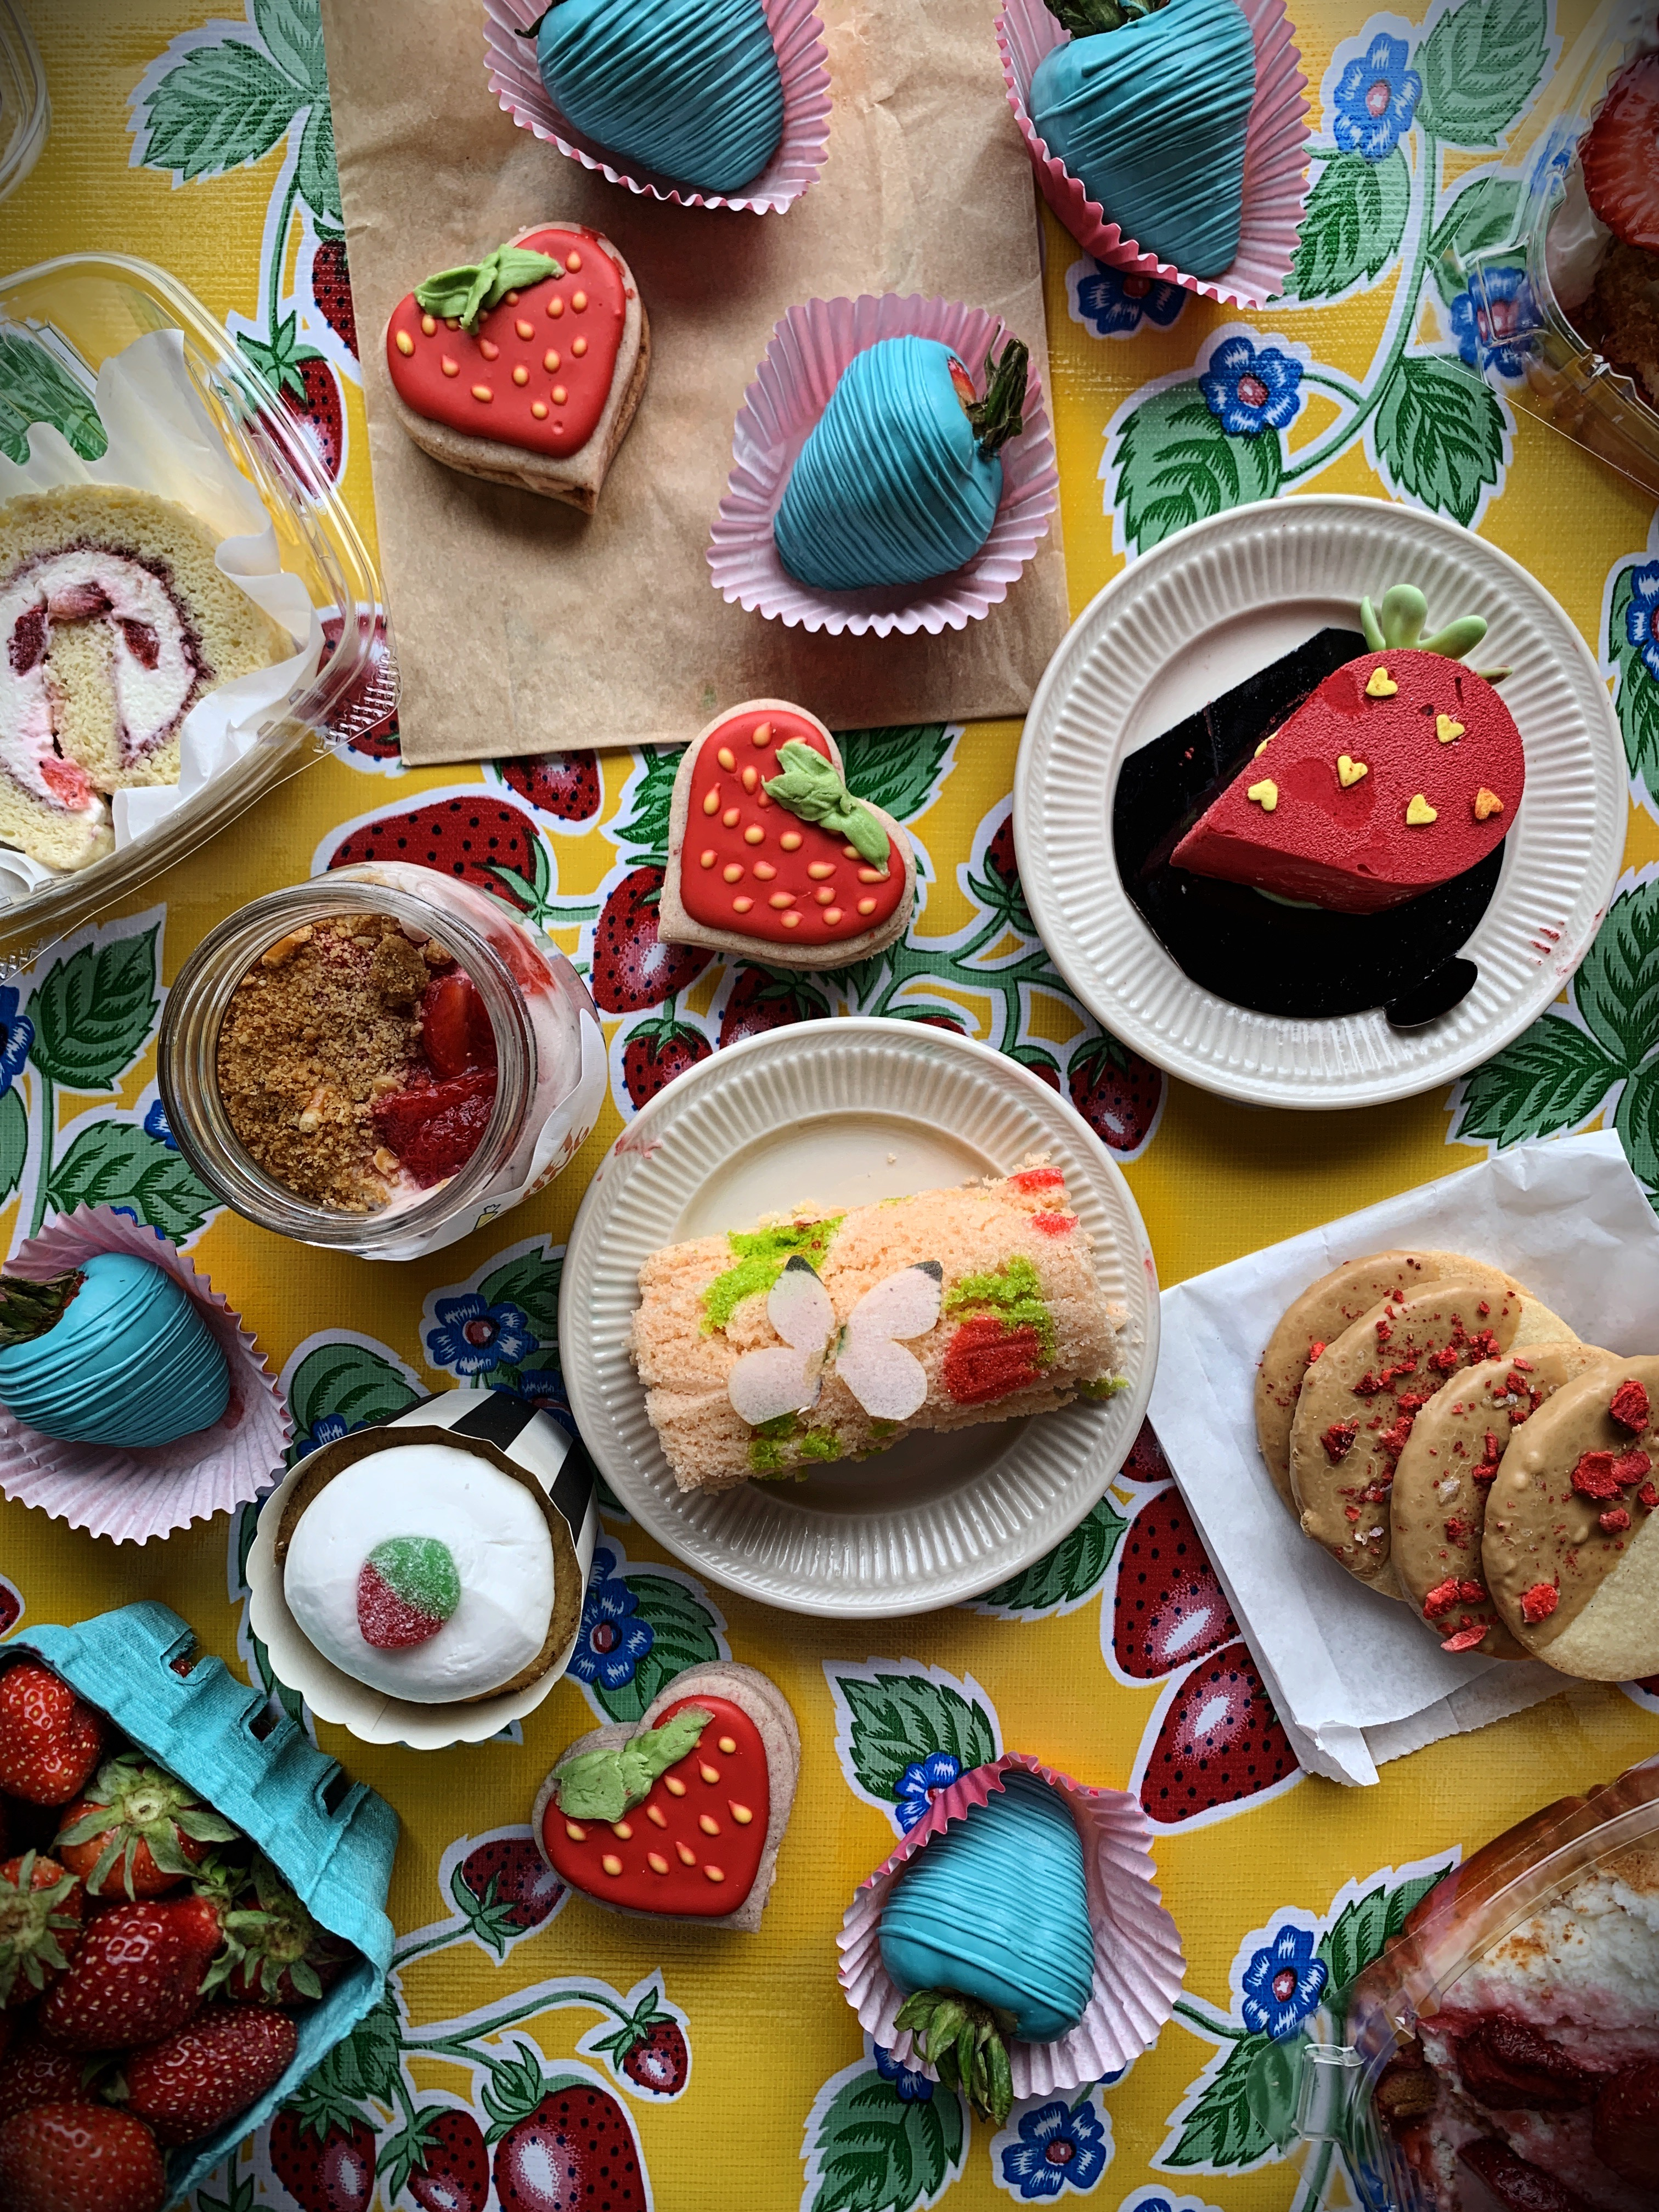 A strawberry cookie, roulade cake, and pastry sit on a table for the Portland Strawberry Museum.